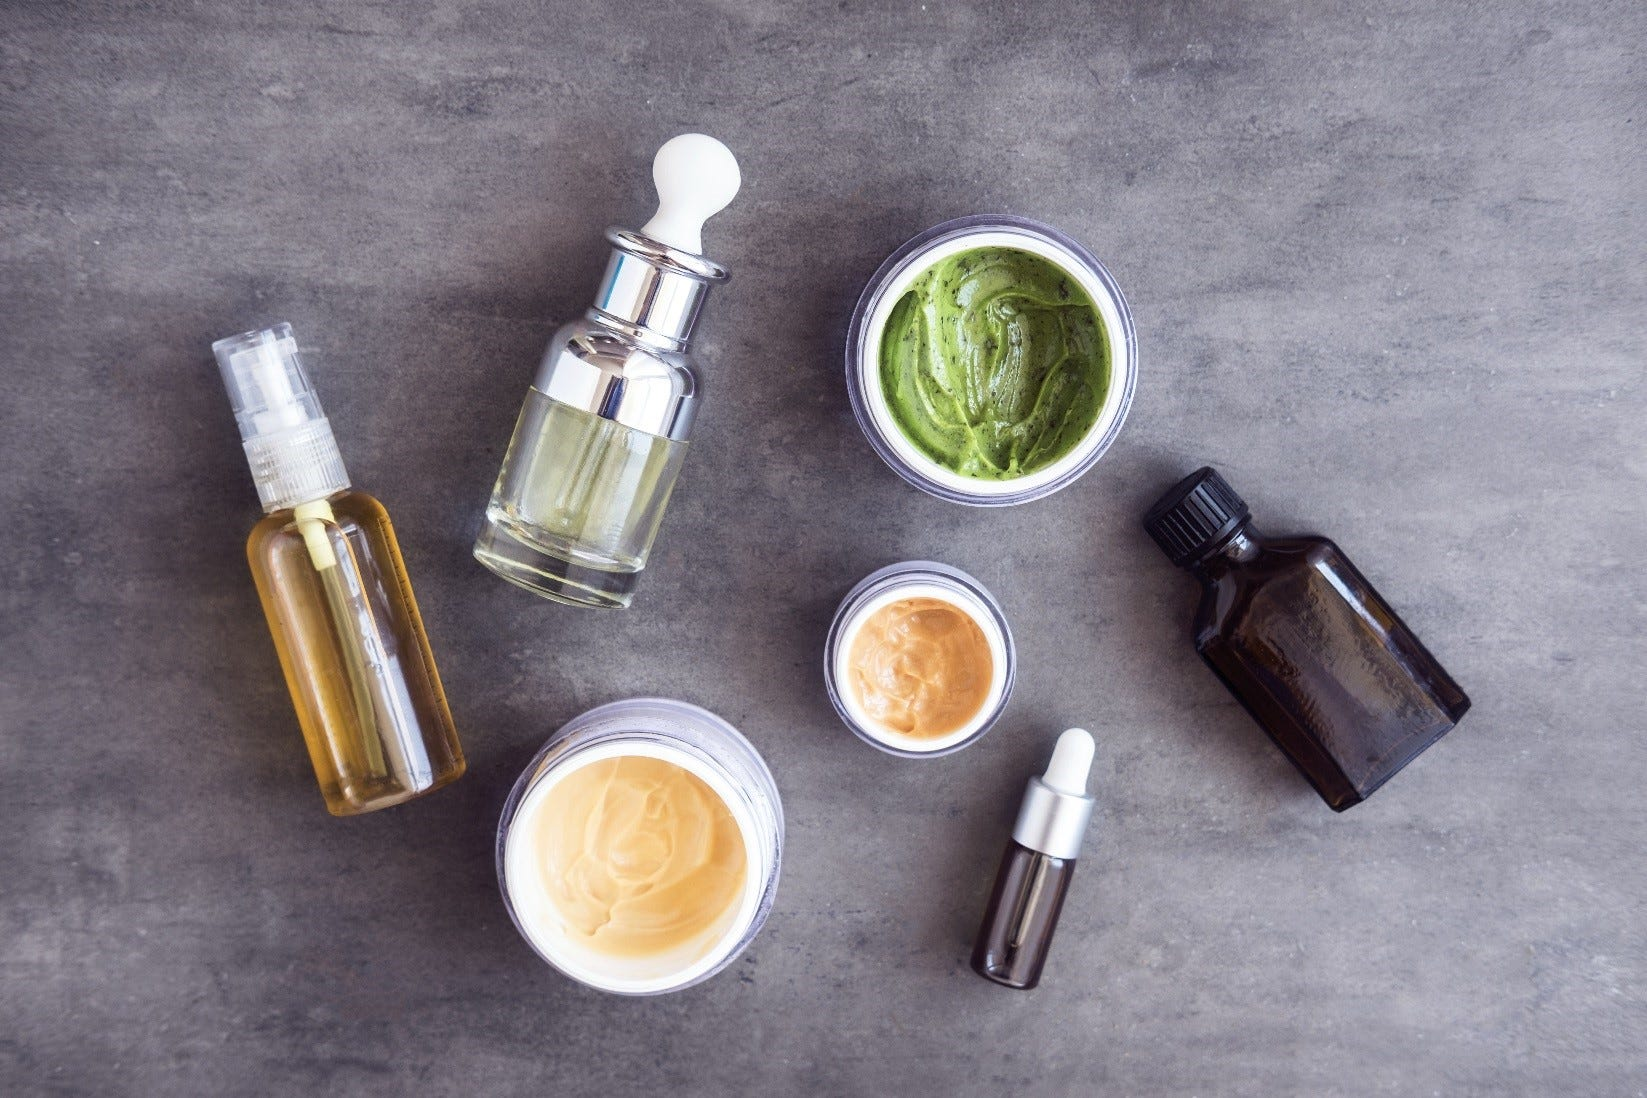 Natural skincare products on a grey background